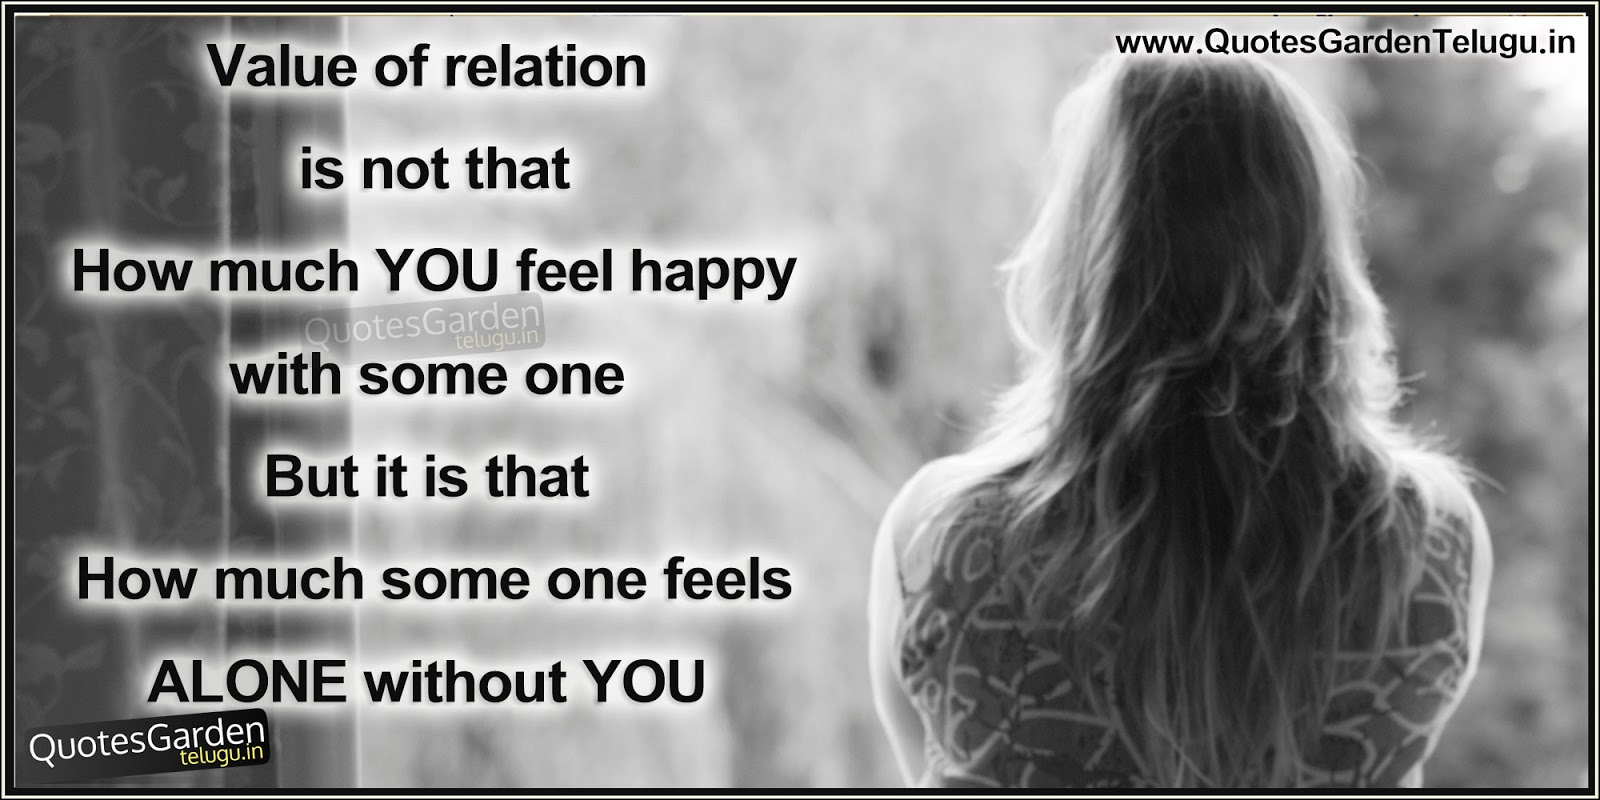 Happines And Loneliness In Relationship Beautiful Quotes N Thoughts Quotes Garden Telugu Telugu Quotes English Quotes Hindi Quotes